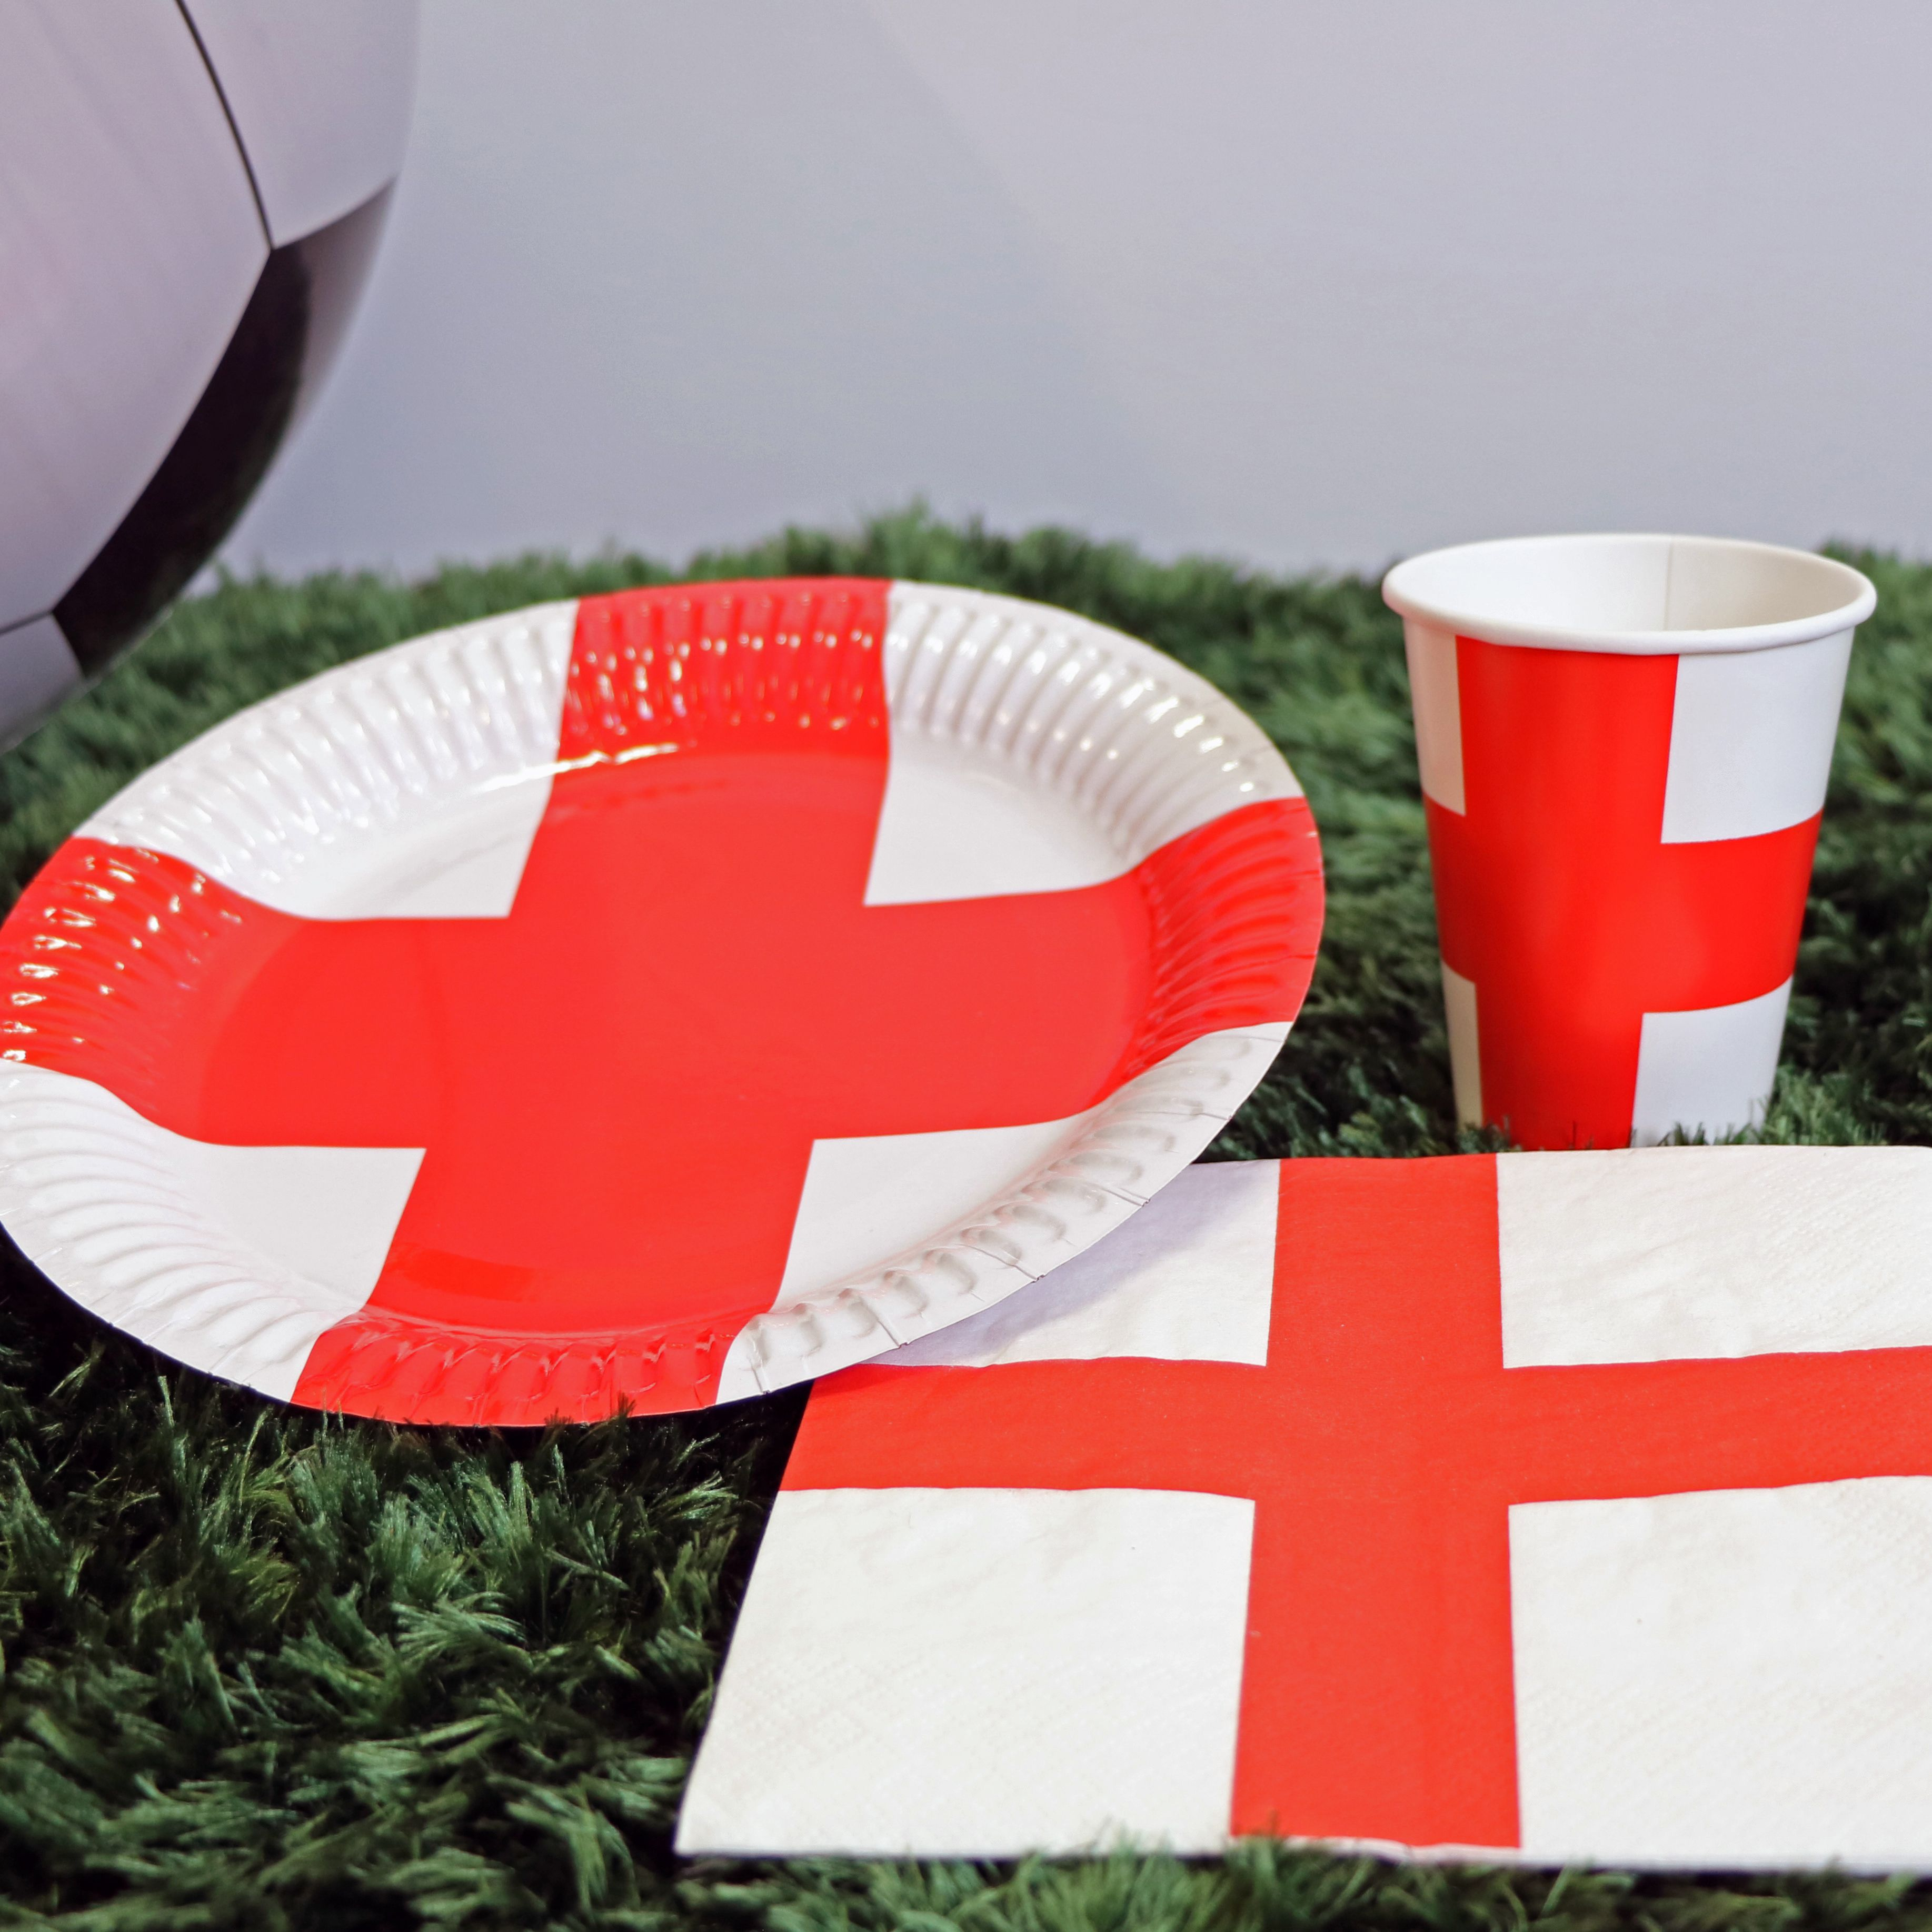 Winning Tableware Including Plates Cups Napkins And More From